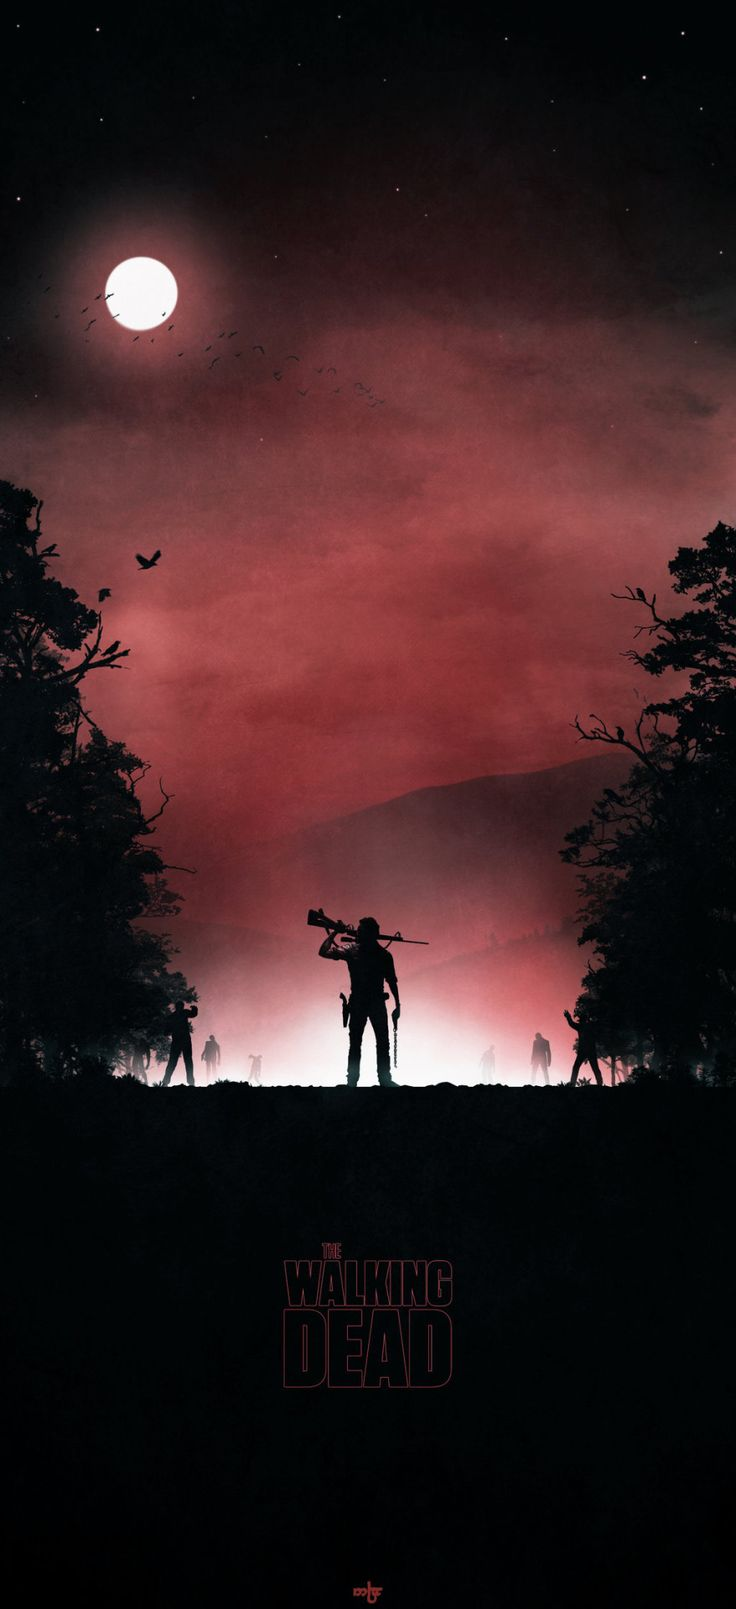 The Walking Dead Character Posters - Created by Colin Morella